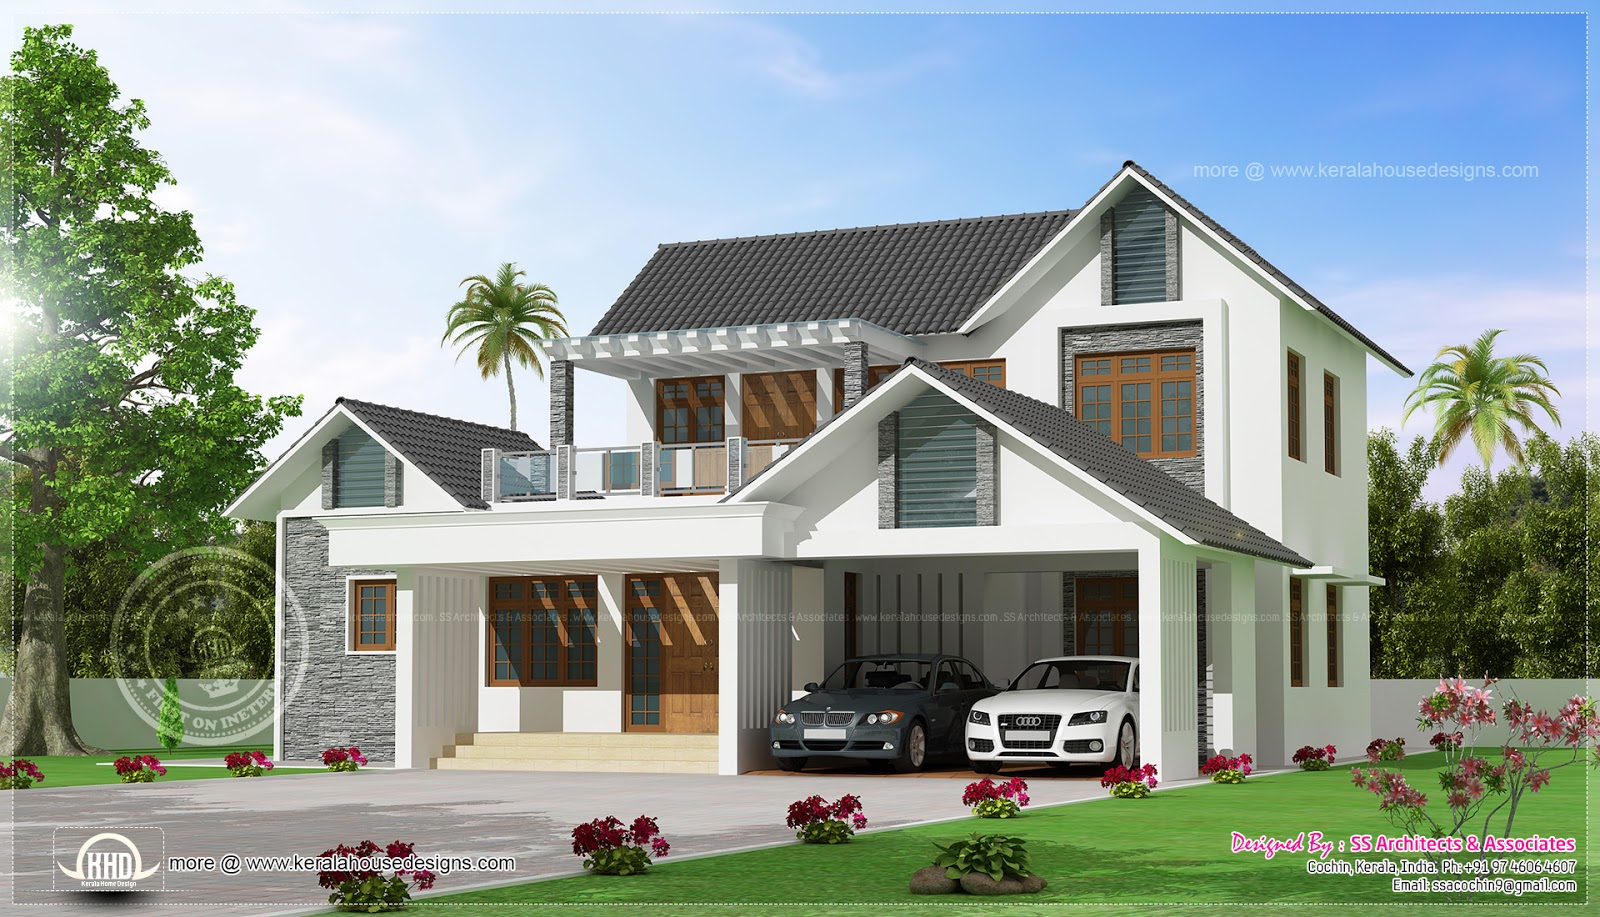 Awesome modern villa exterior elevation home kerala plans for Villa plans in kerala